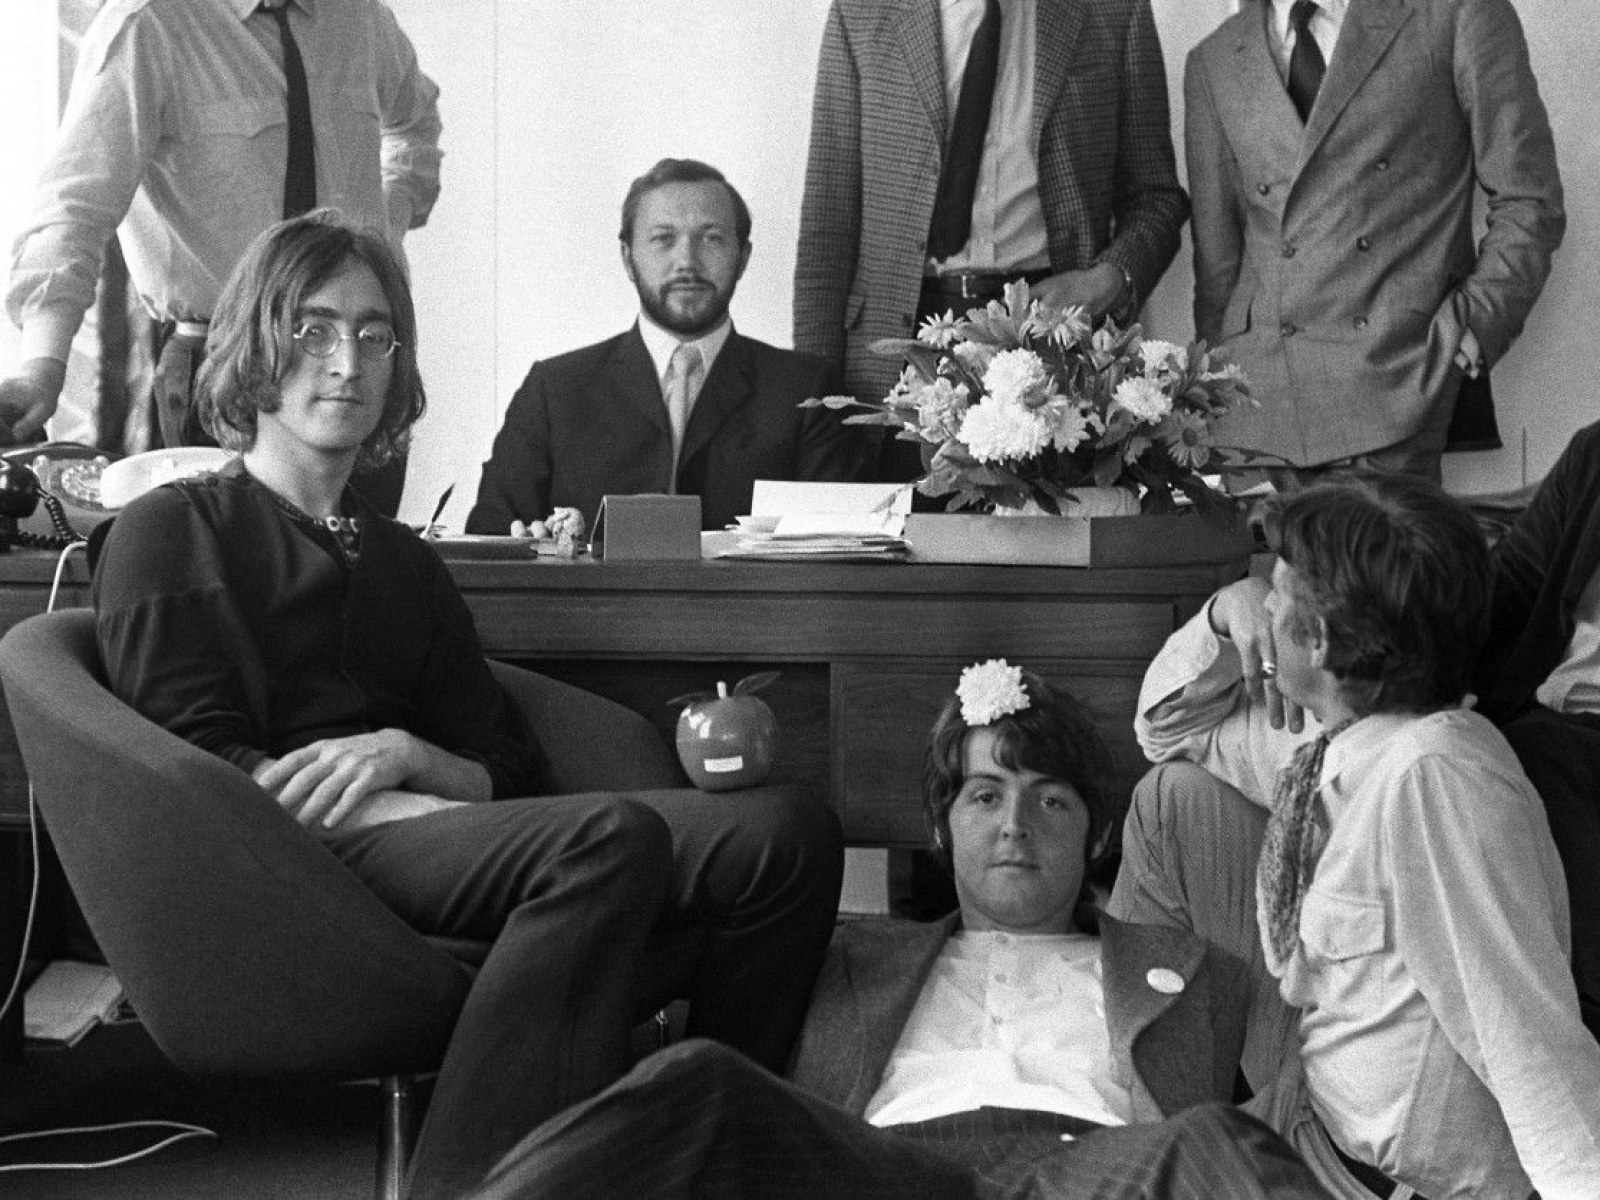 An Insider's Account of The Beatles' American Invasion